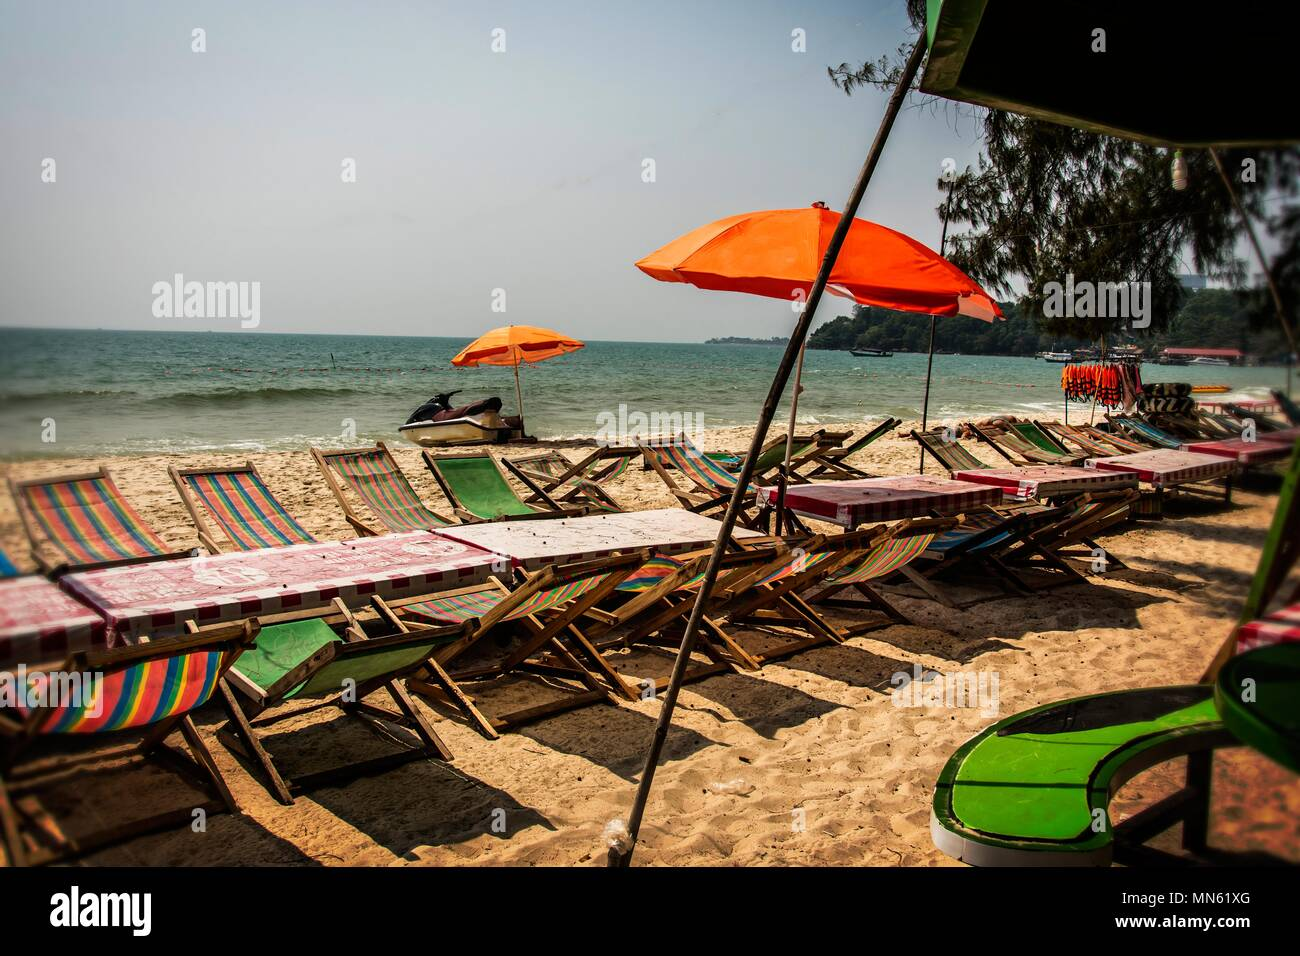 sunbeds and umbrellas on the ochheuteal tourist beach in the vicinity of the port and city of Sihanoukville. Cambodia - Stock Image